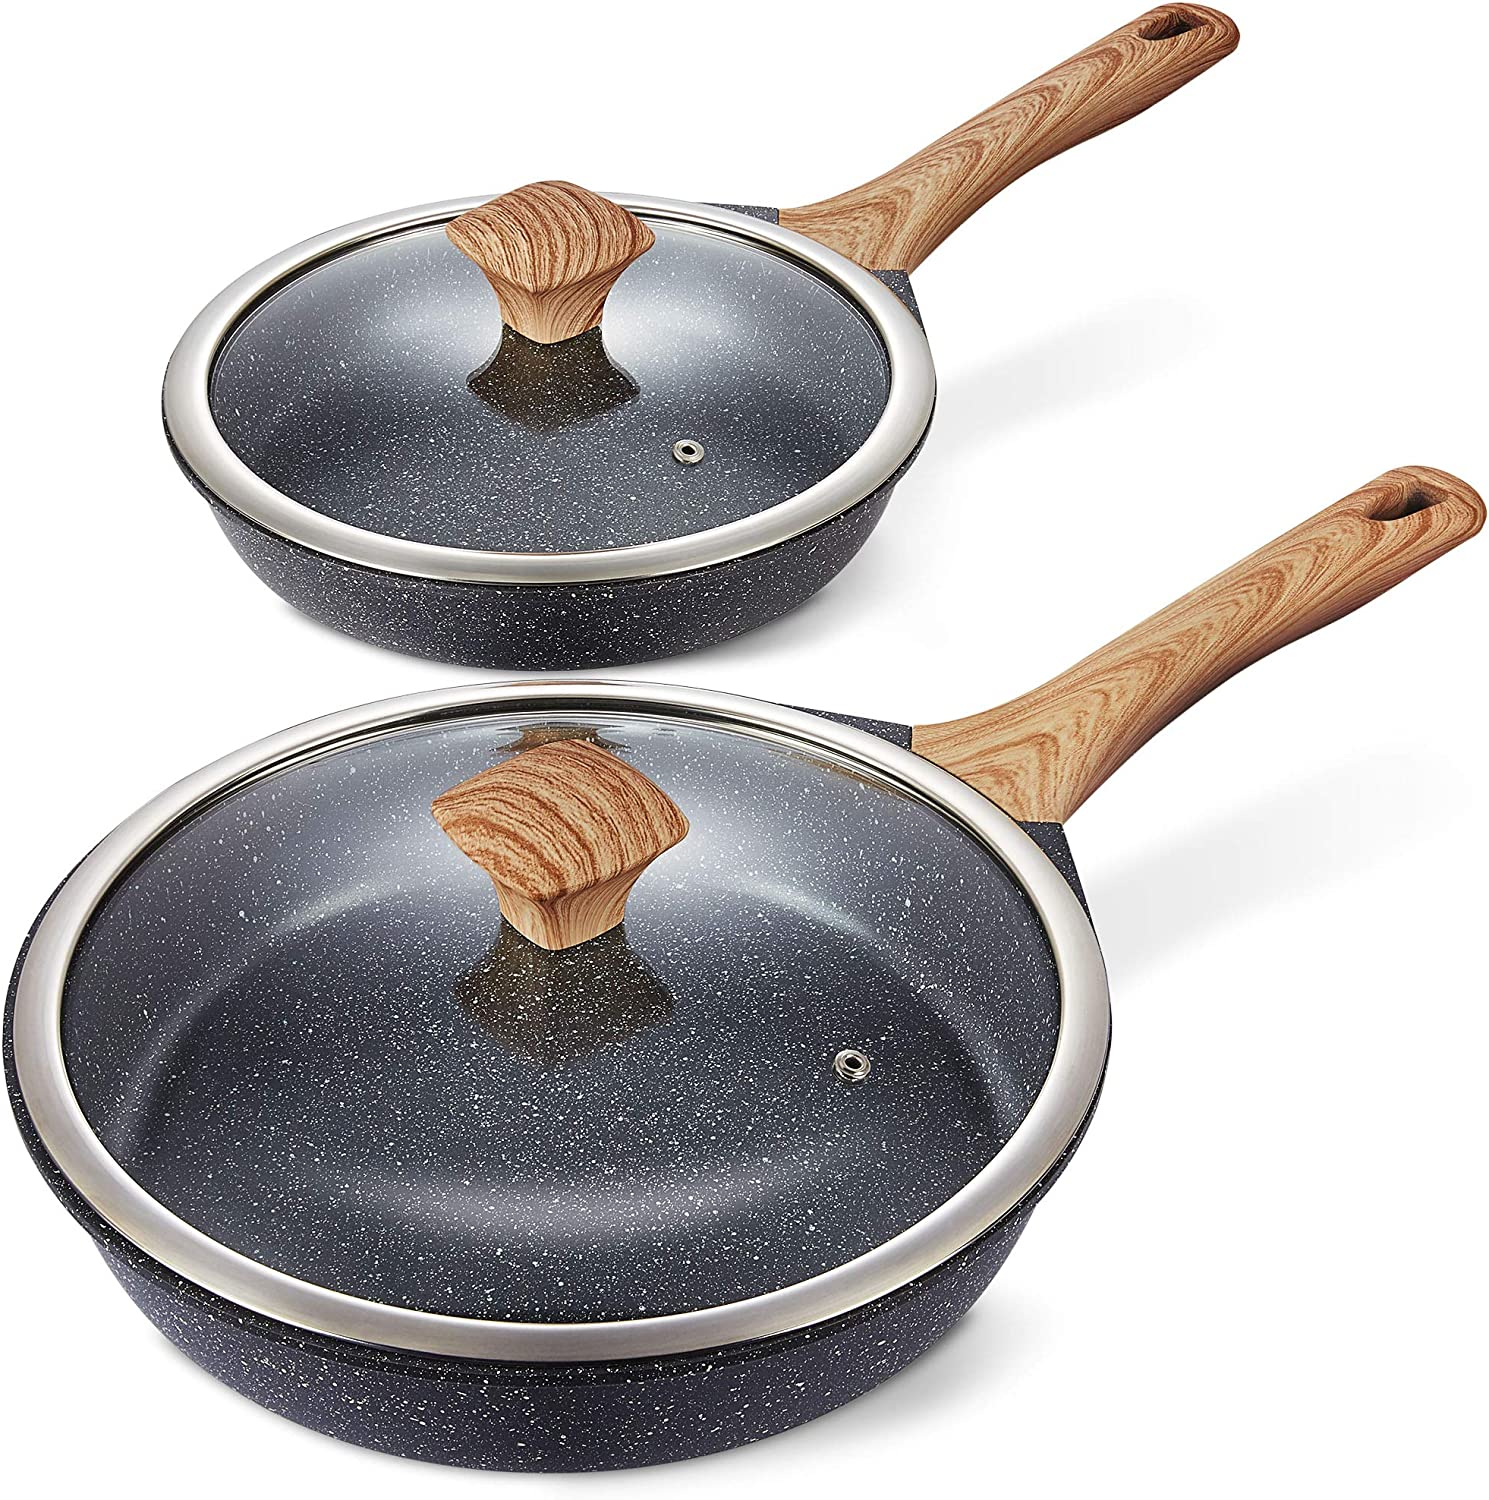 """Amazon.com: Miusco Nonstick Frying Pan Set with Lids, 10"""" & 12"""", Natural  Granite Coating, Premium PFOA Free Skillets with Ergonomic Bakelite Cool  Touch Handle, All Stoves Compatible: Home & Kitchen"""